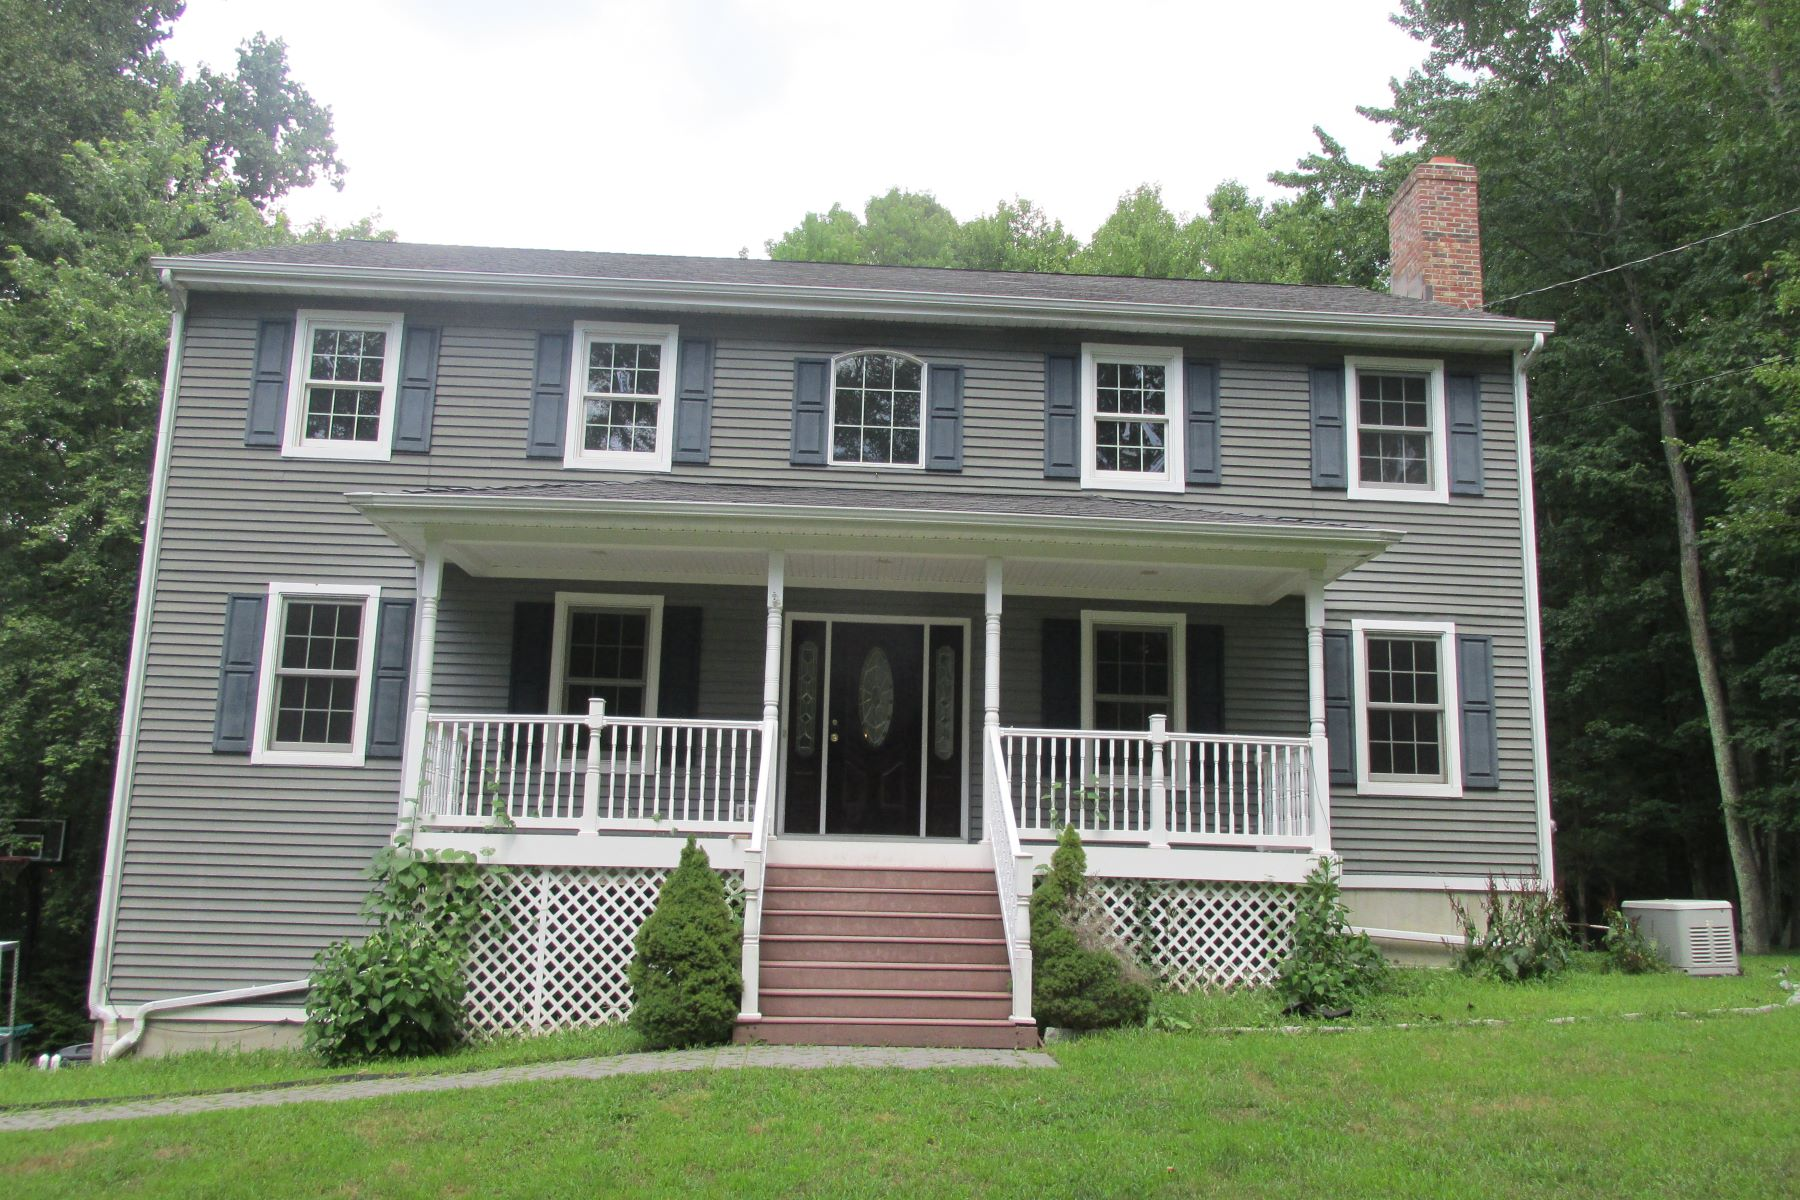 Single Family Homes for Sale at 15-b Shari Drive Seymour, Connecticut 06483 United States